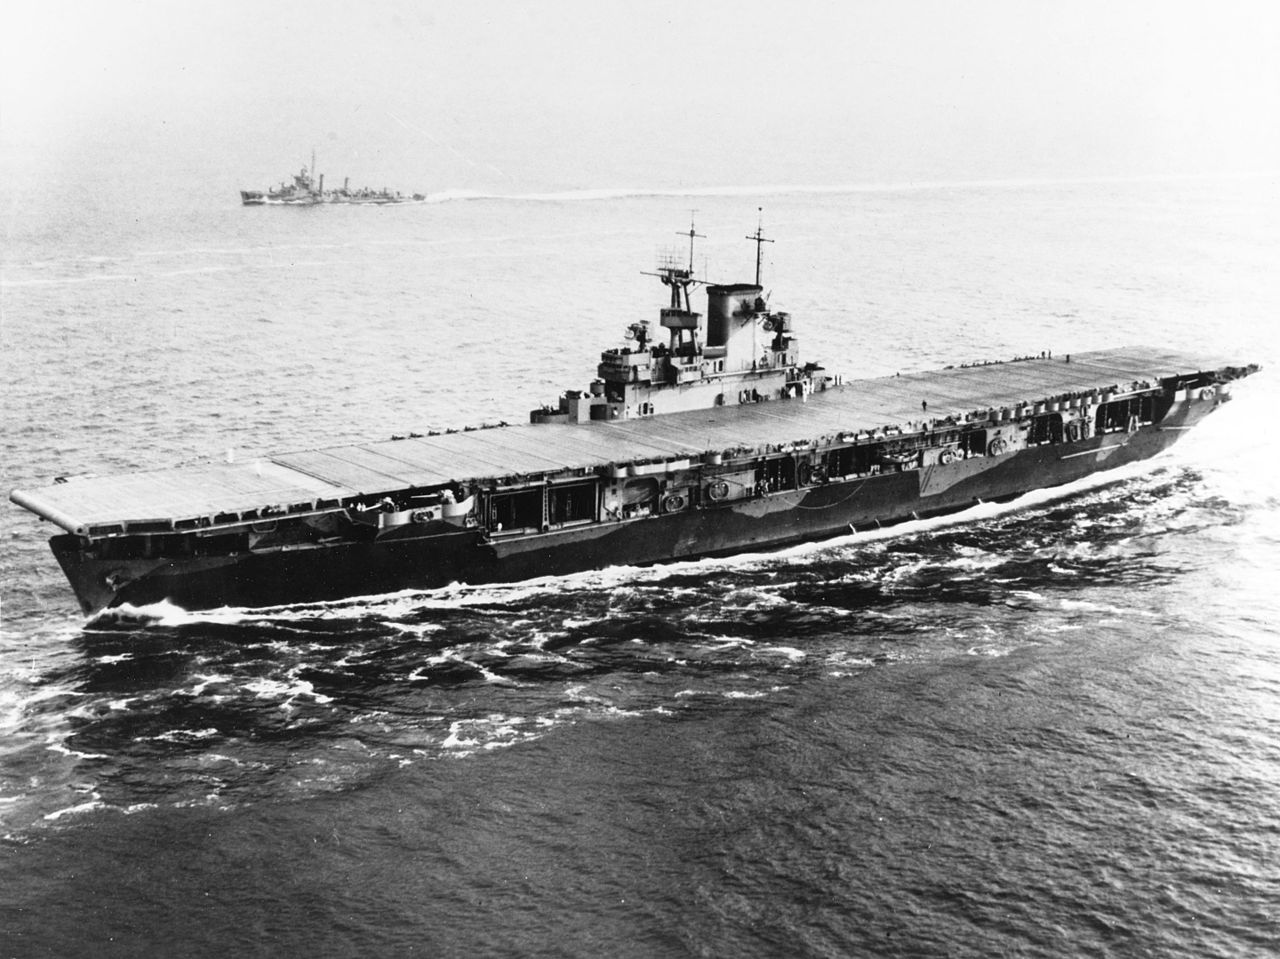 1280px-USS_Wasp_%28CV-7%29_entering_Hampton_Roads_on_26_May_1942.jpg